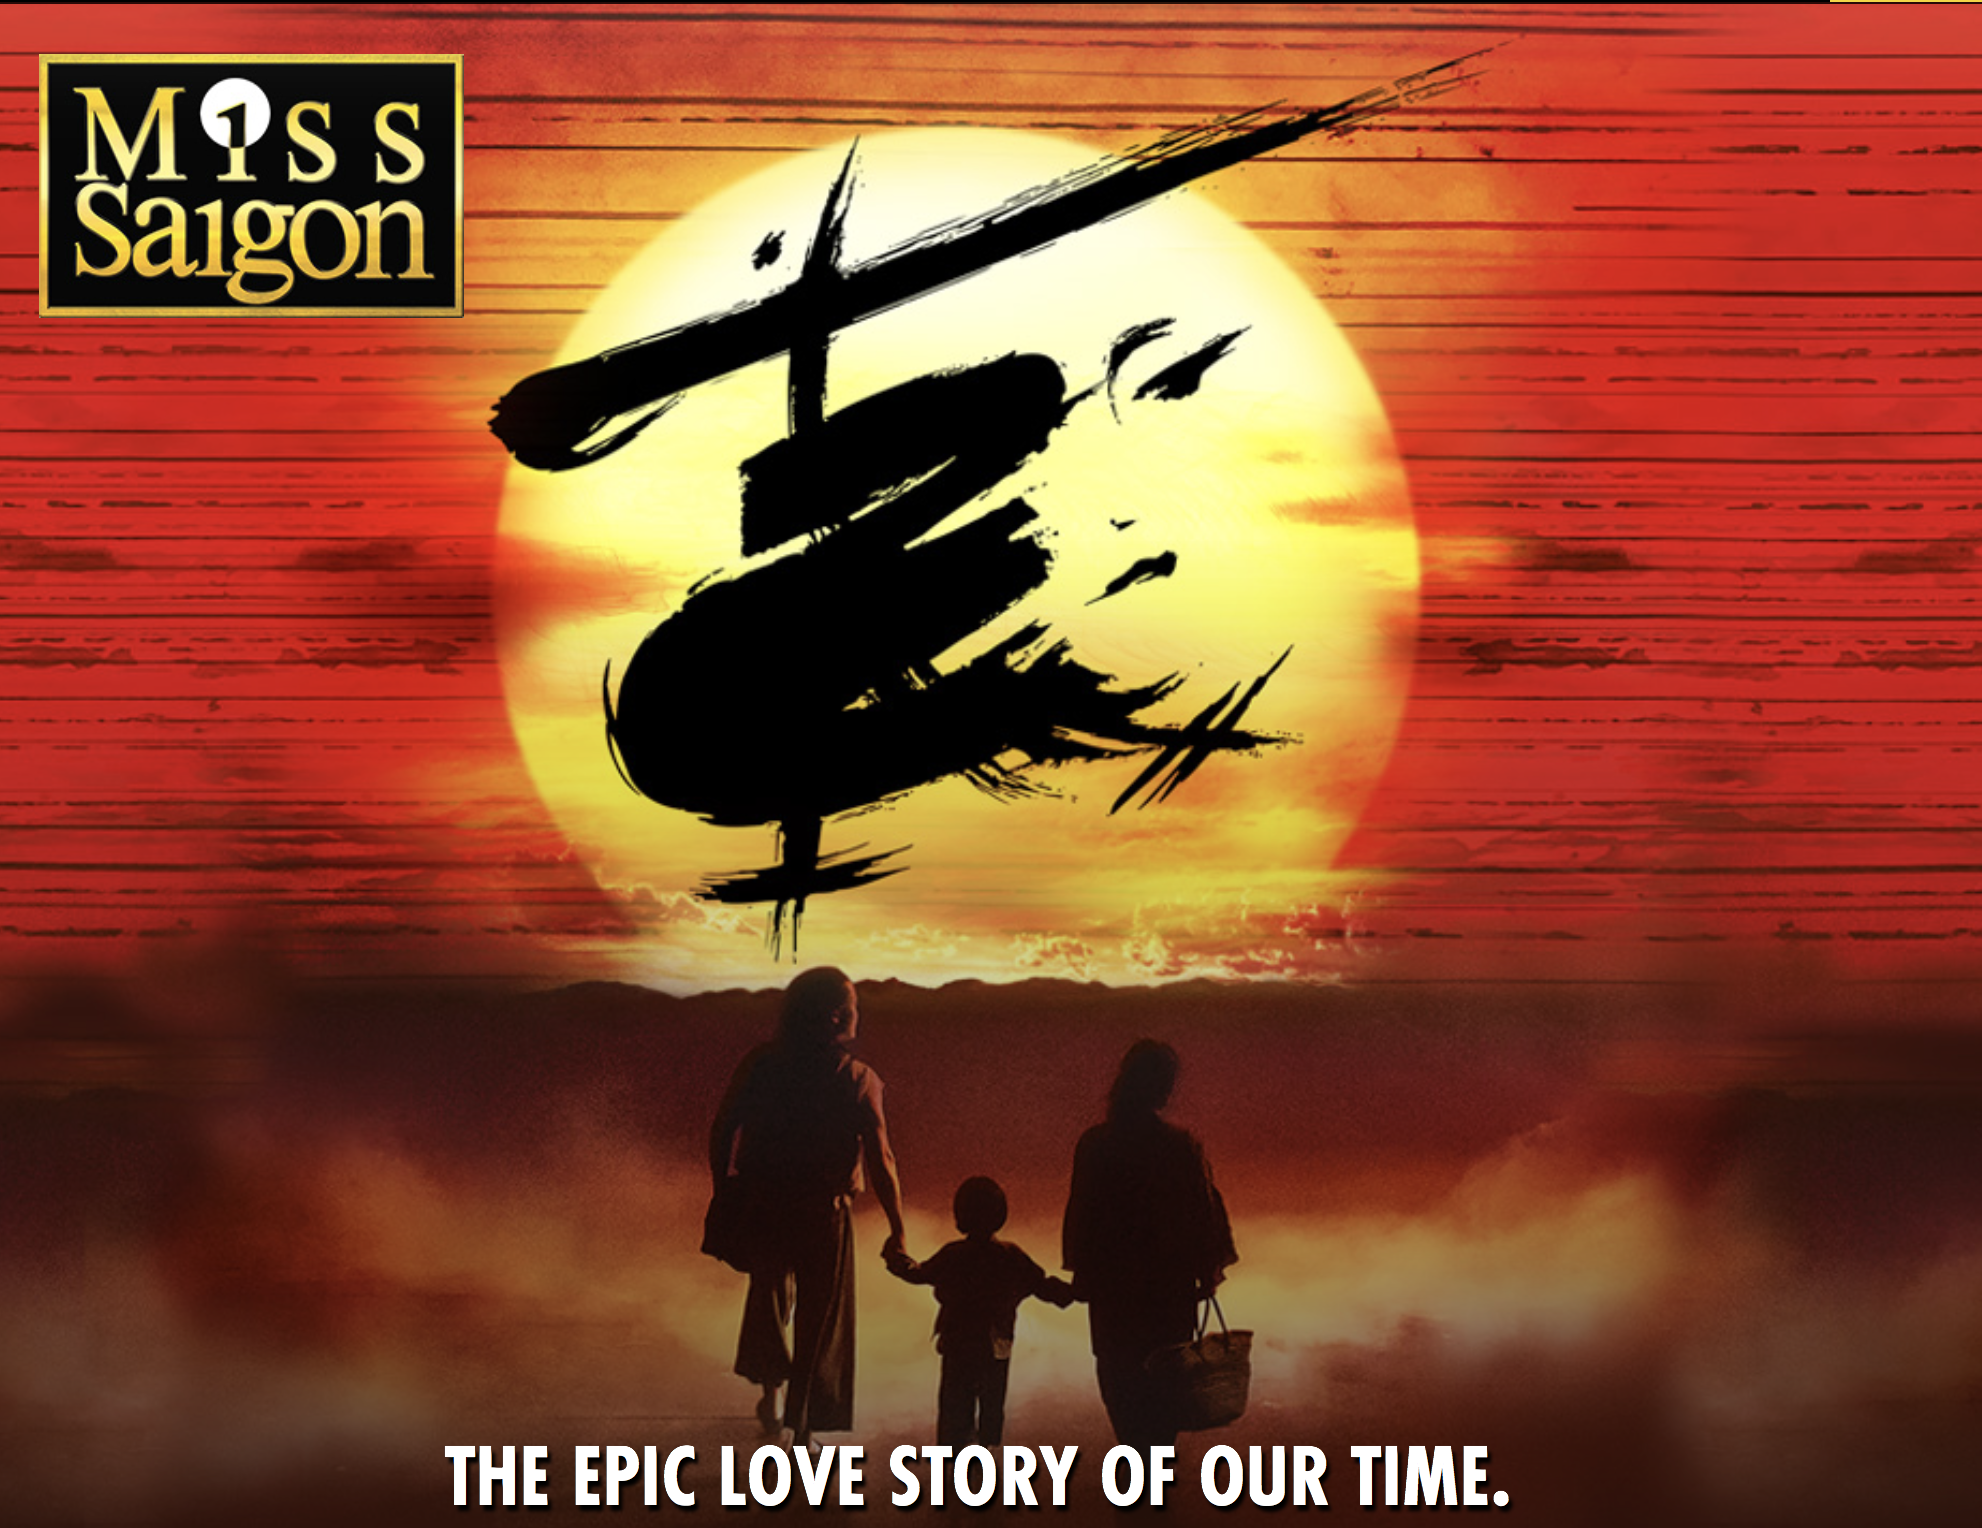 devin-ilaw-miss-saigon-greg-salvatori-photography-2.png